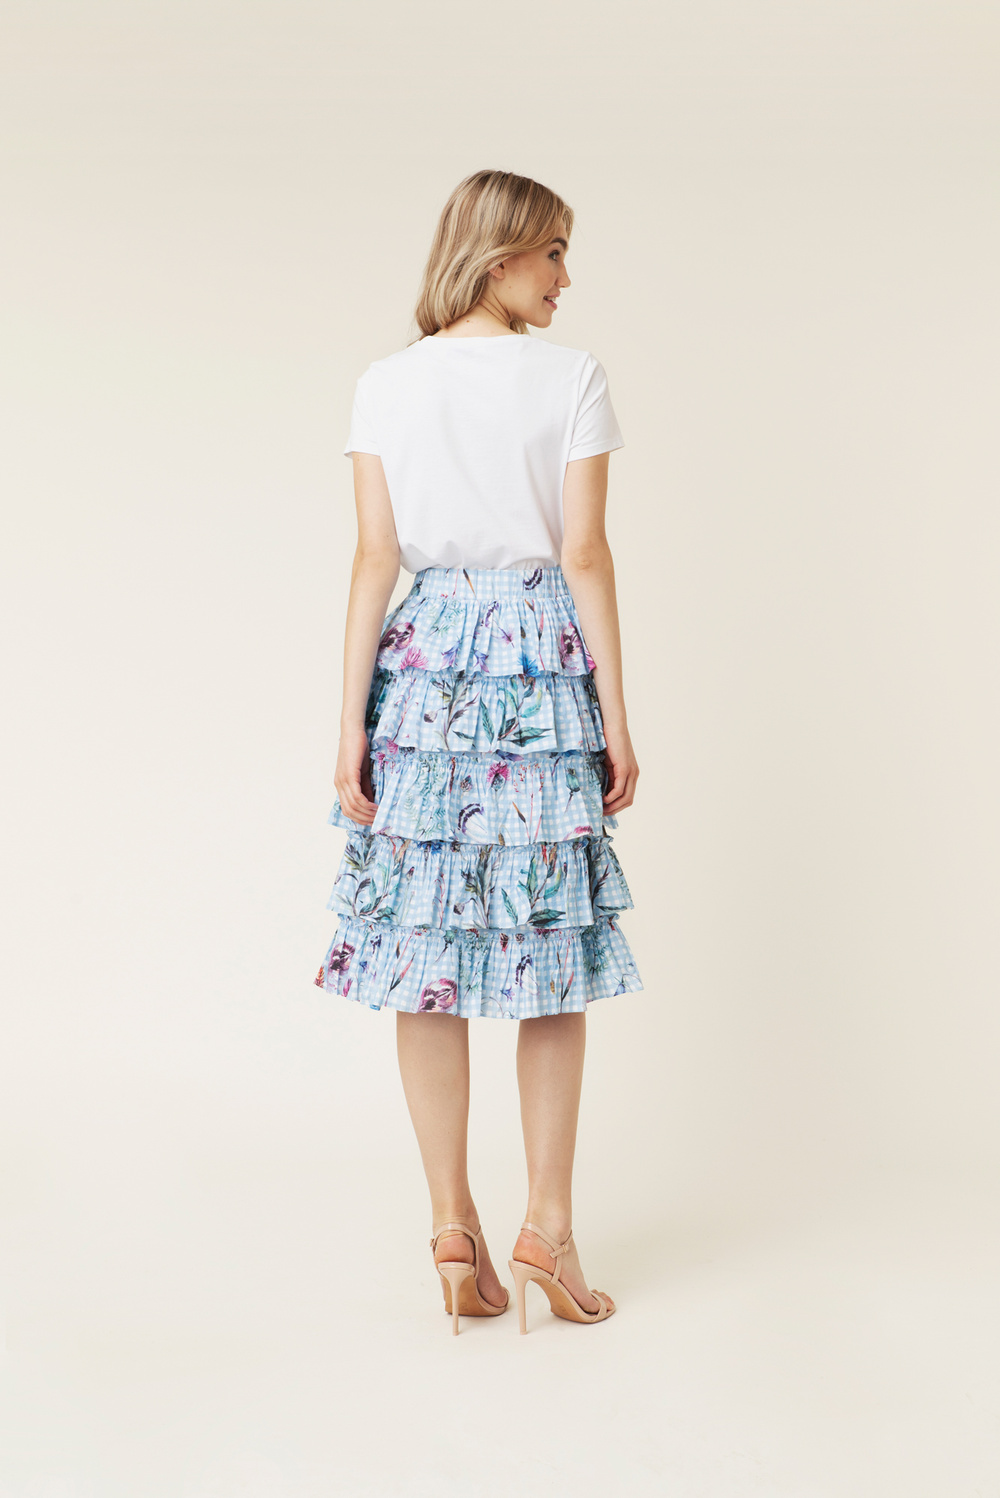 Willa skirt